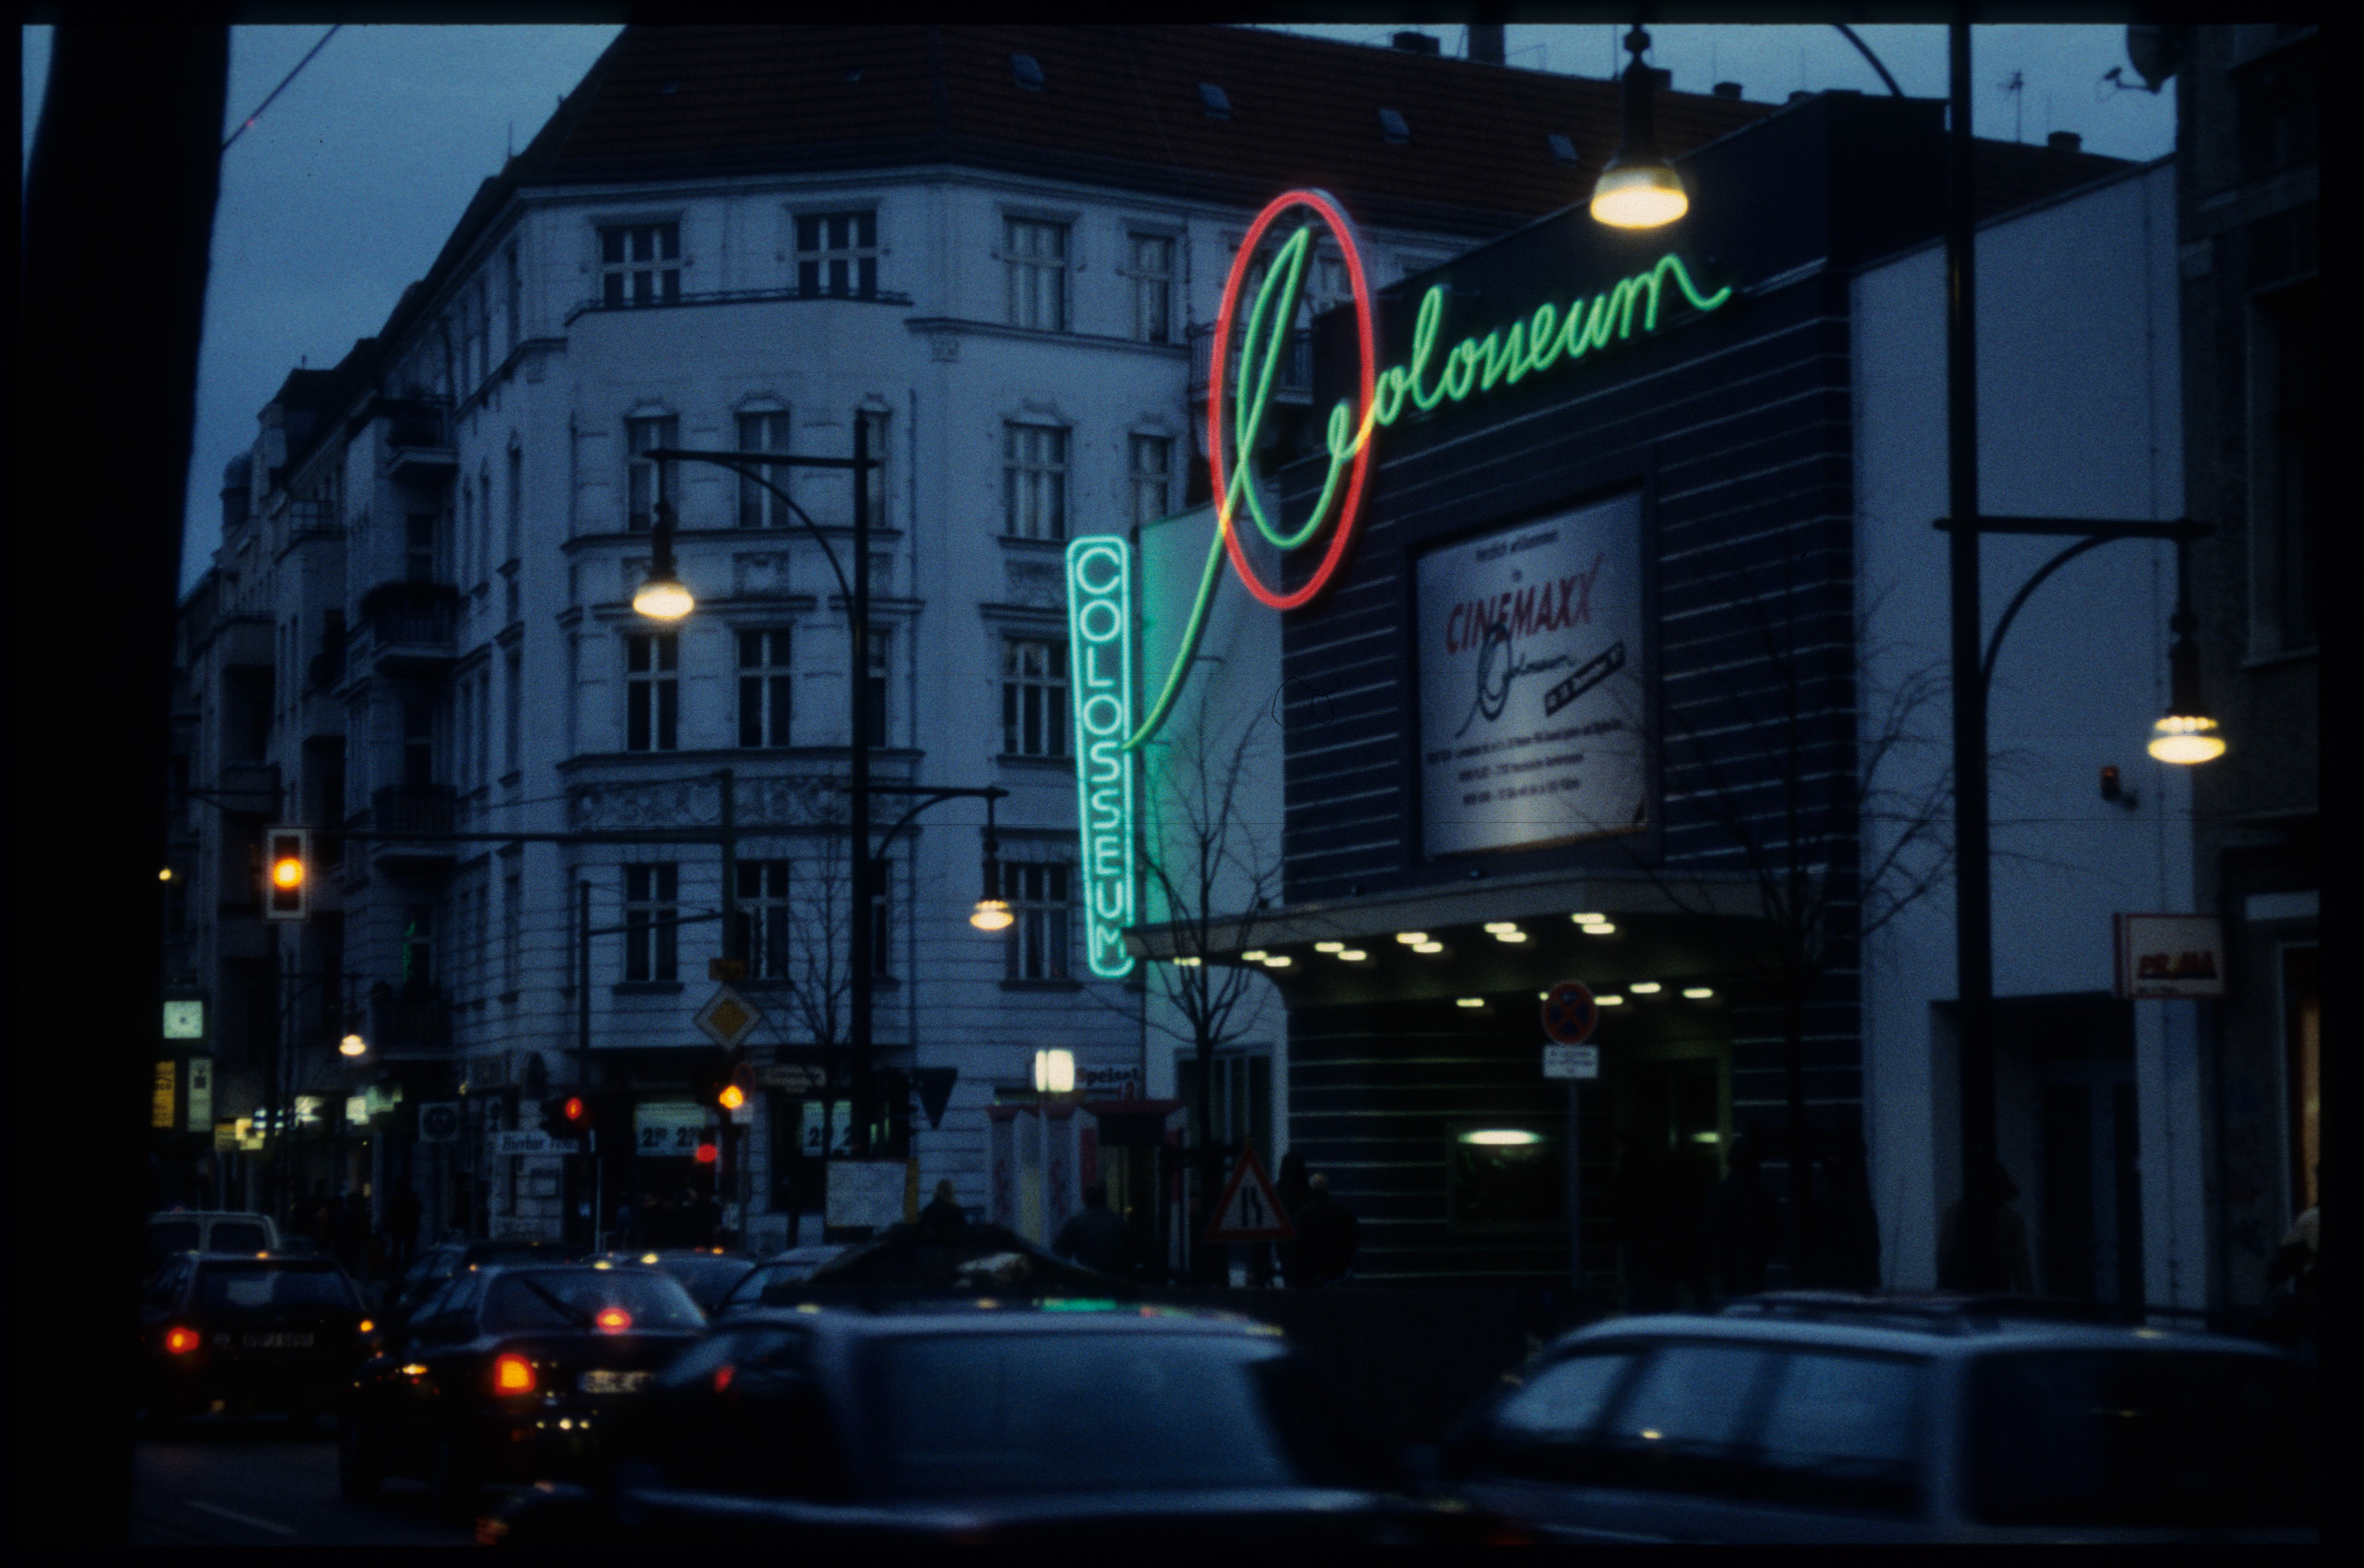 Color photo: façade at night with illuminated lettering